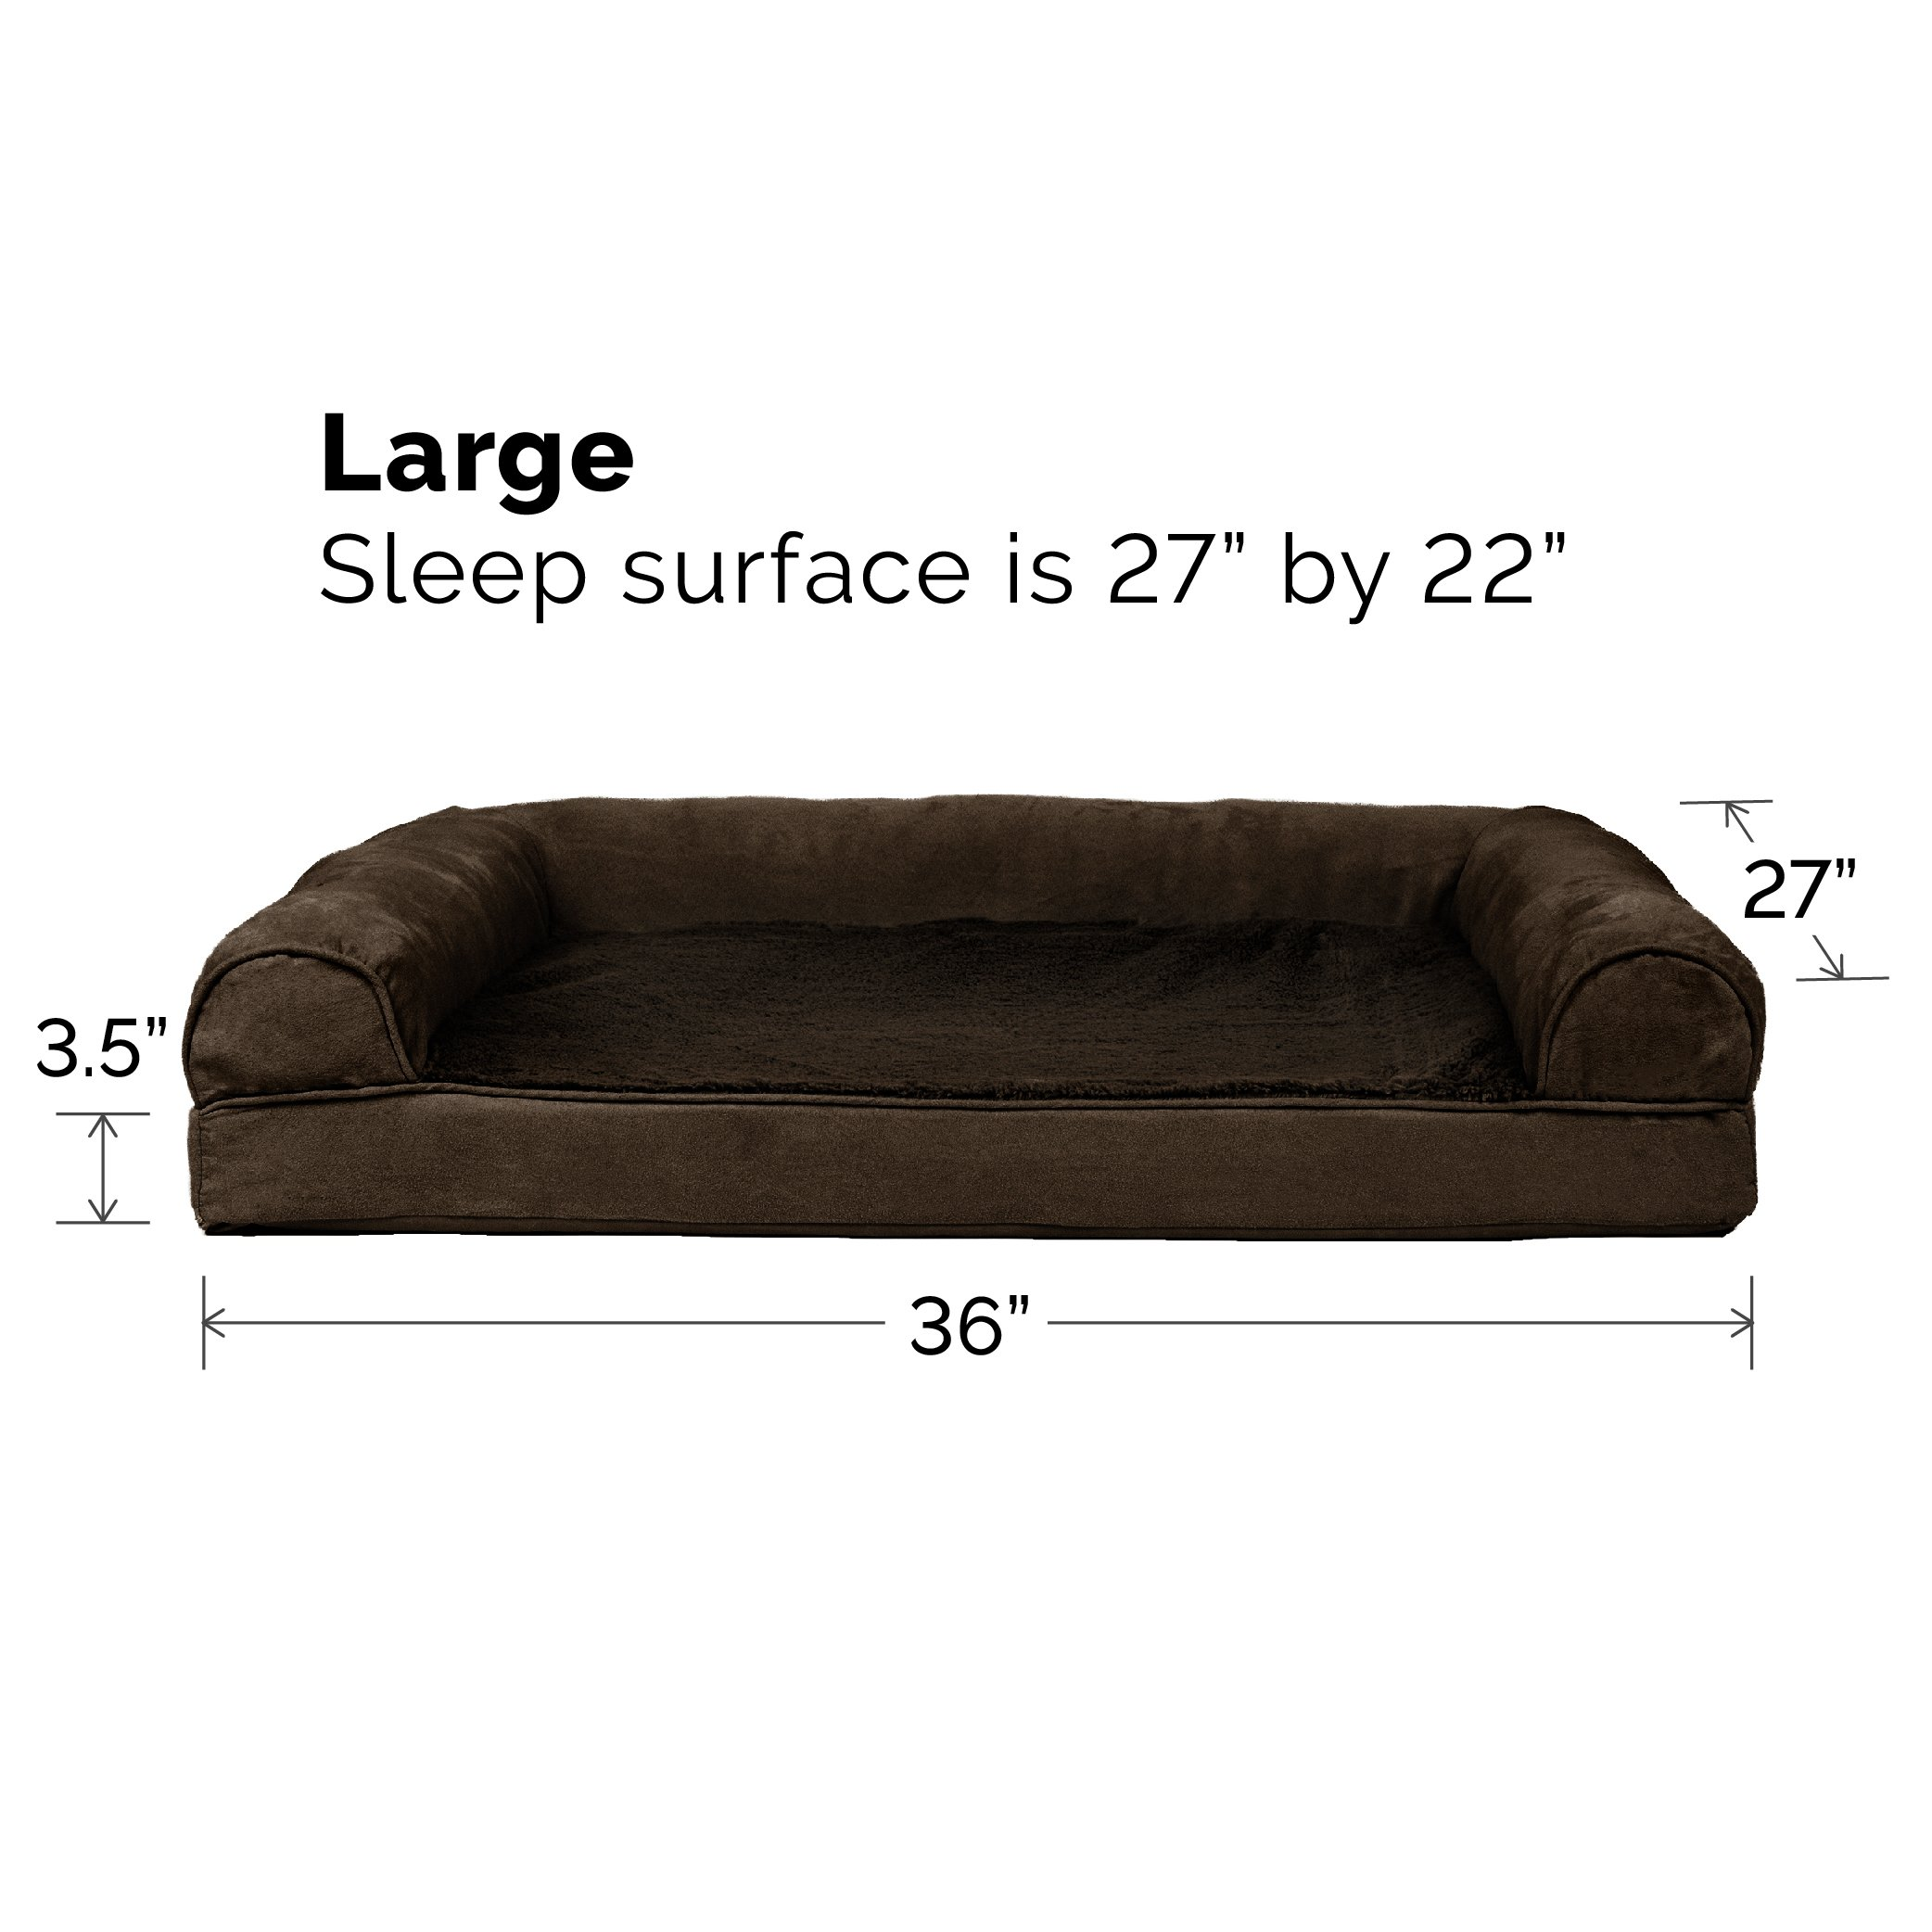 FurHaven Orthopedic Ultra Plush & Velvet Sofa-Style Couch Pet Bed for Dogs and Cats, Espresso, Large by Furhaven Pet (Image #6)